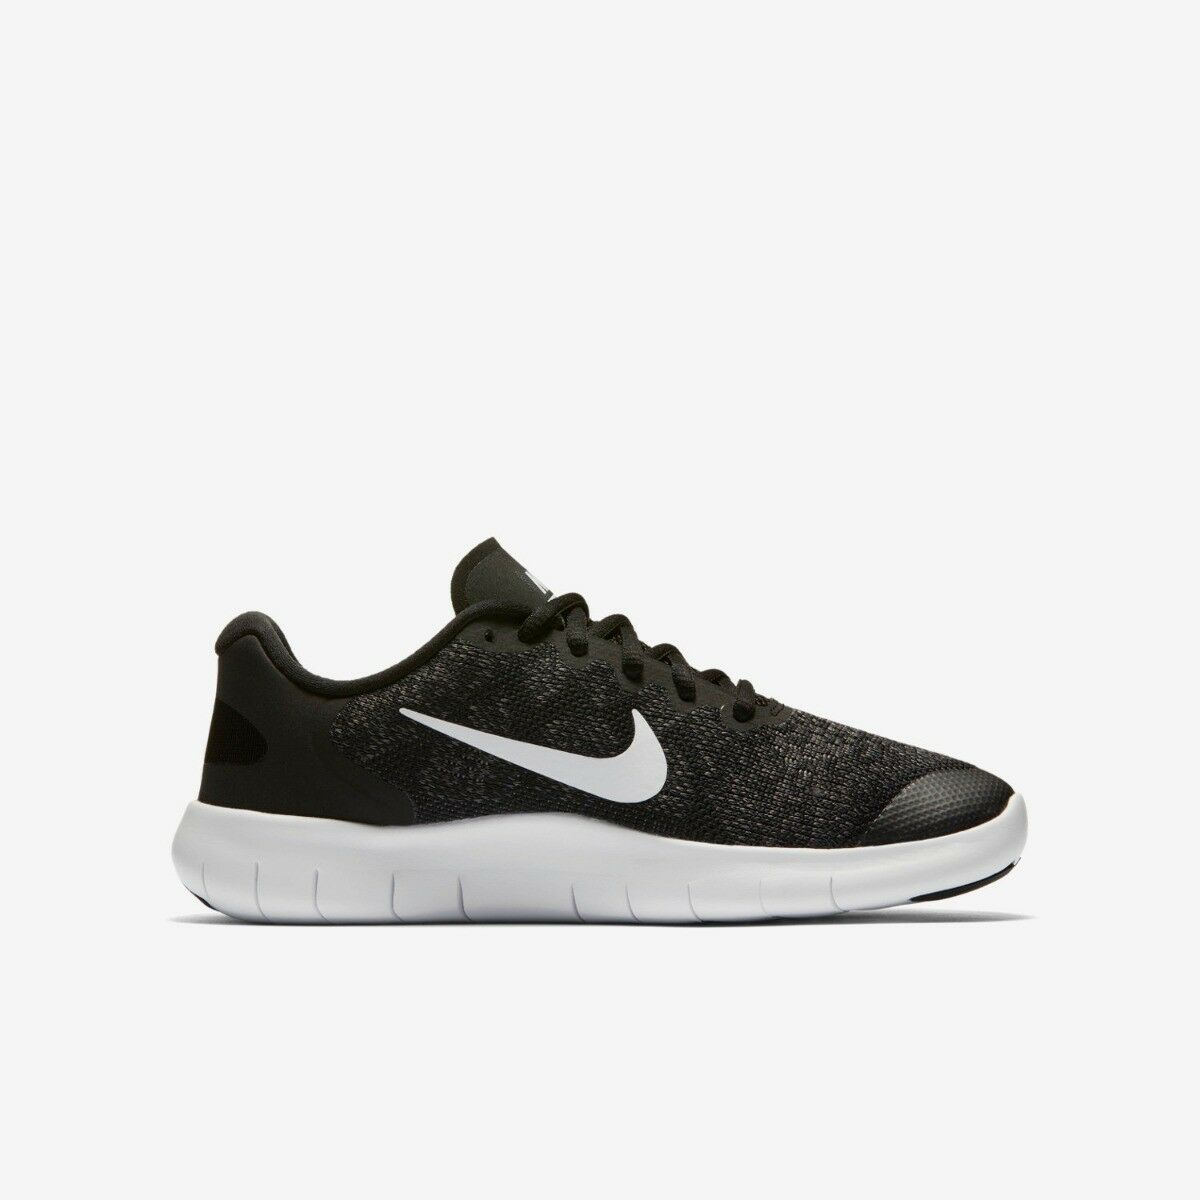 c7c81090a7cc Nike 904255-002 Kids RN 2017 (gs) Running Shoe 5 Big Kid M for sale ...